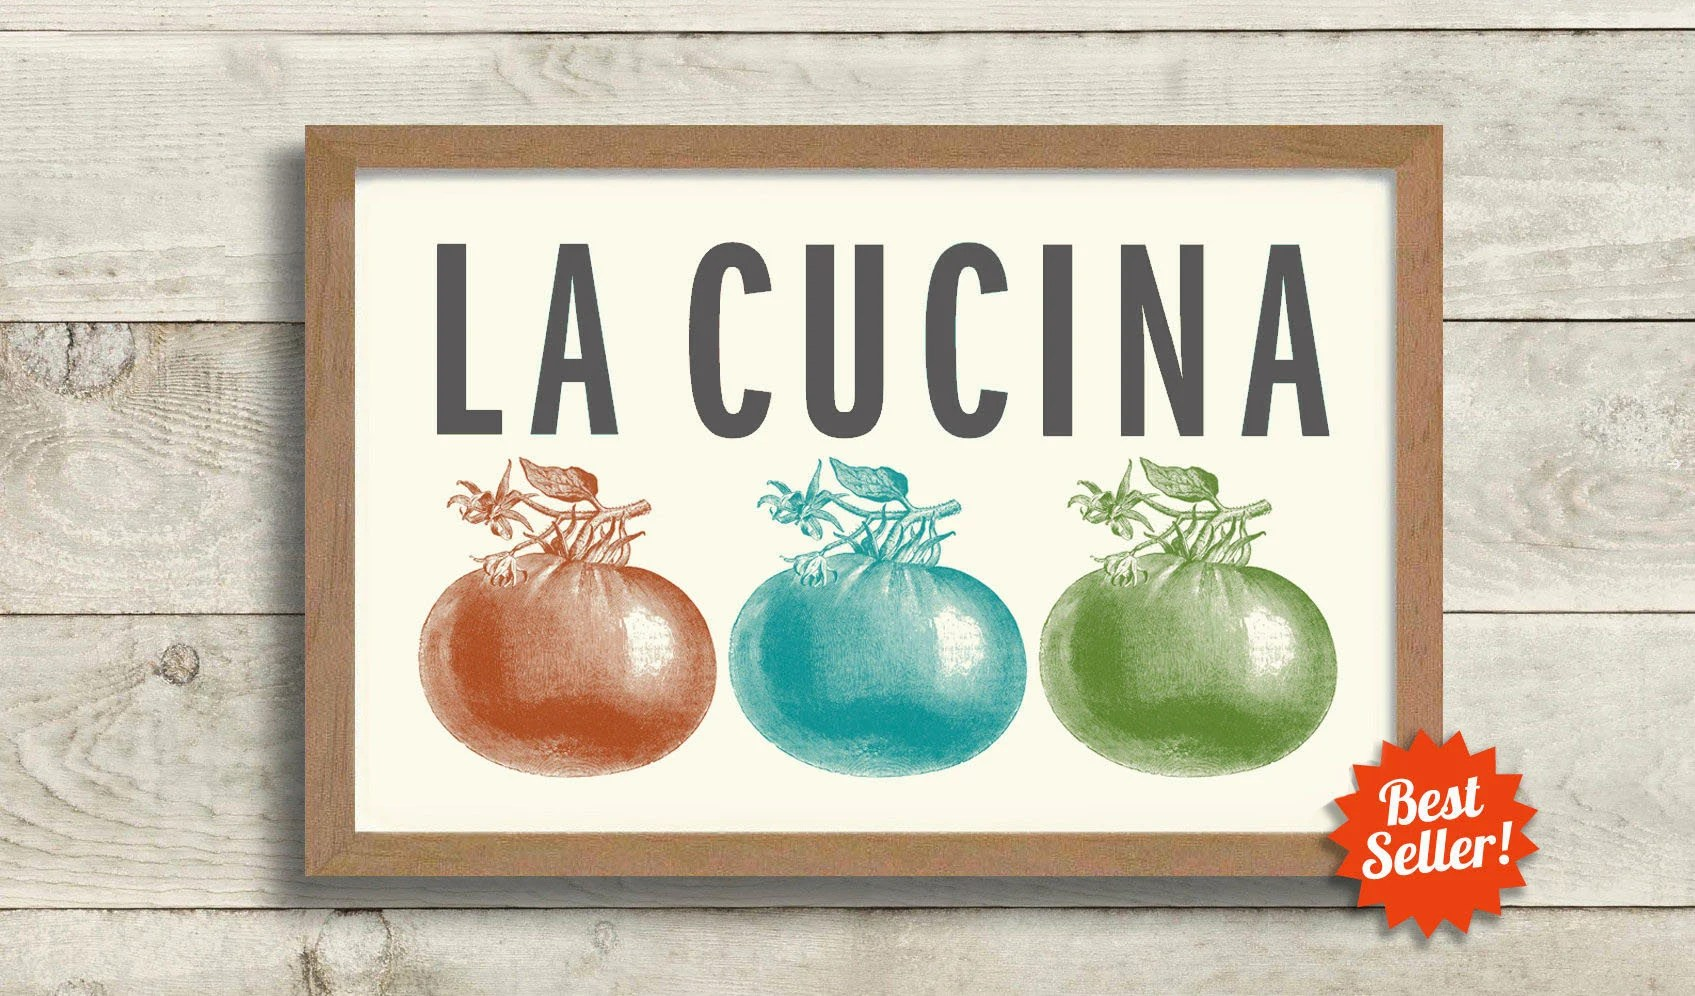 Cucina Kitchen Sign La Cucina Sign Italian Kitchen Decor Italy Art Tomato Wall Art Print Italian Family Chef Italian Recipes Sign Restaurant Idea Venice Rome